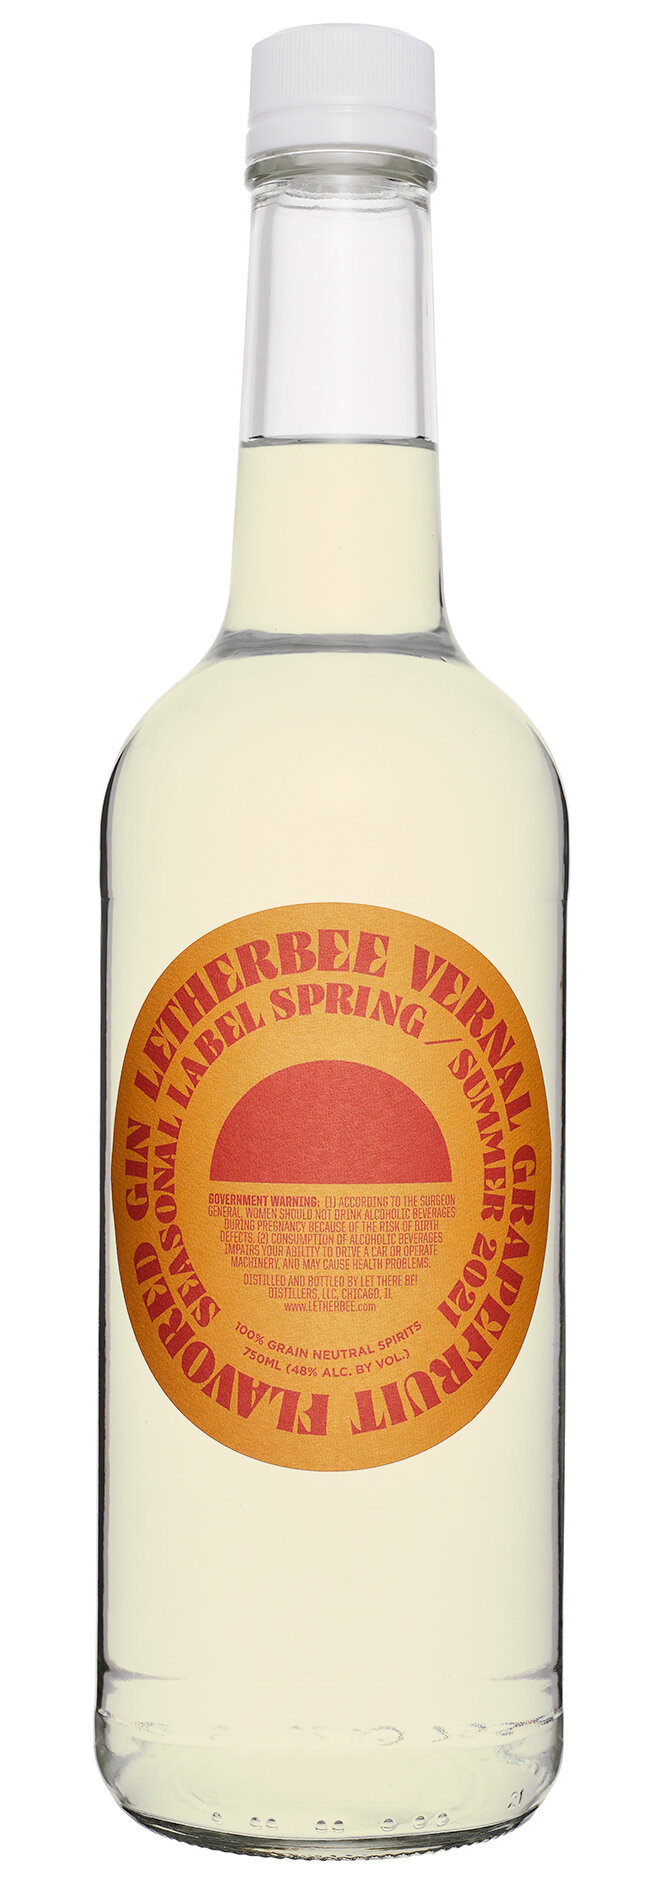 Letherbee Vernal 2021 Limited Edition Gin 750ml